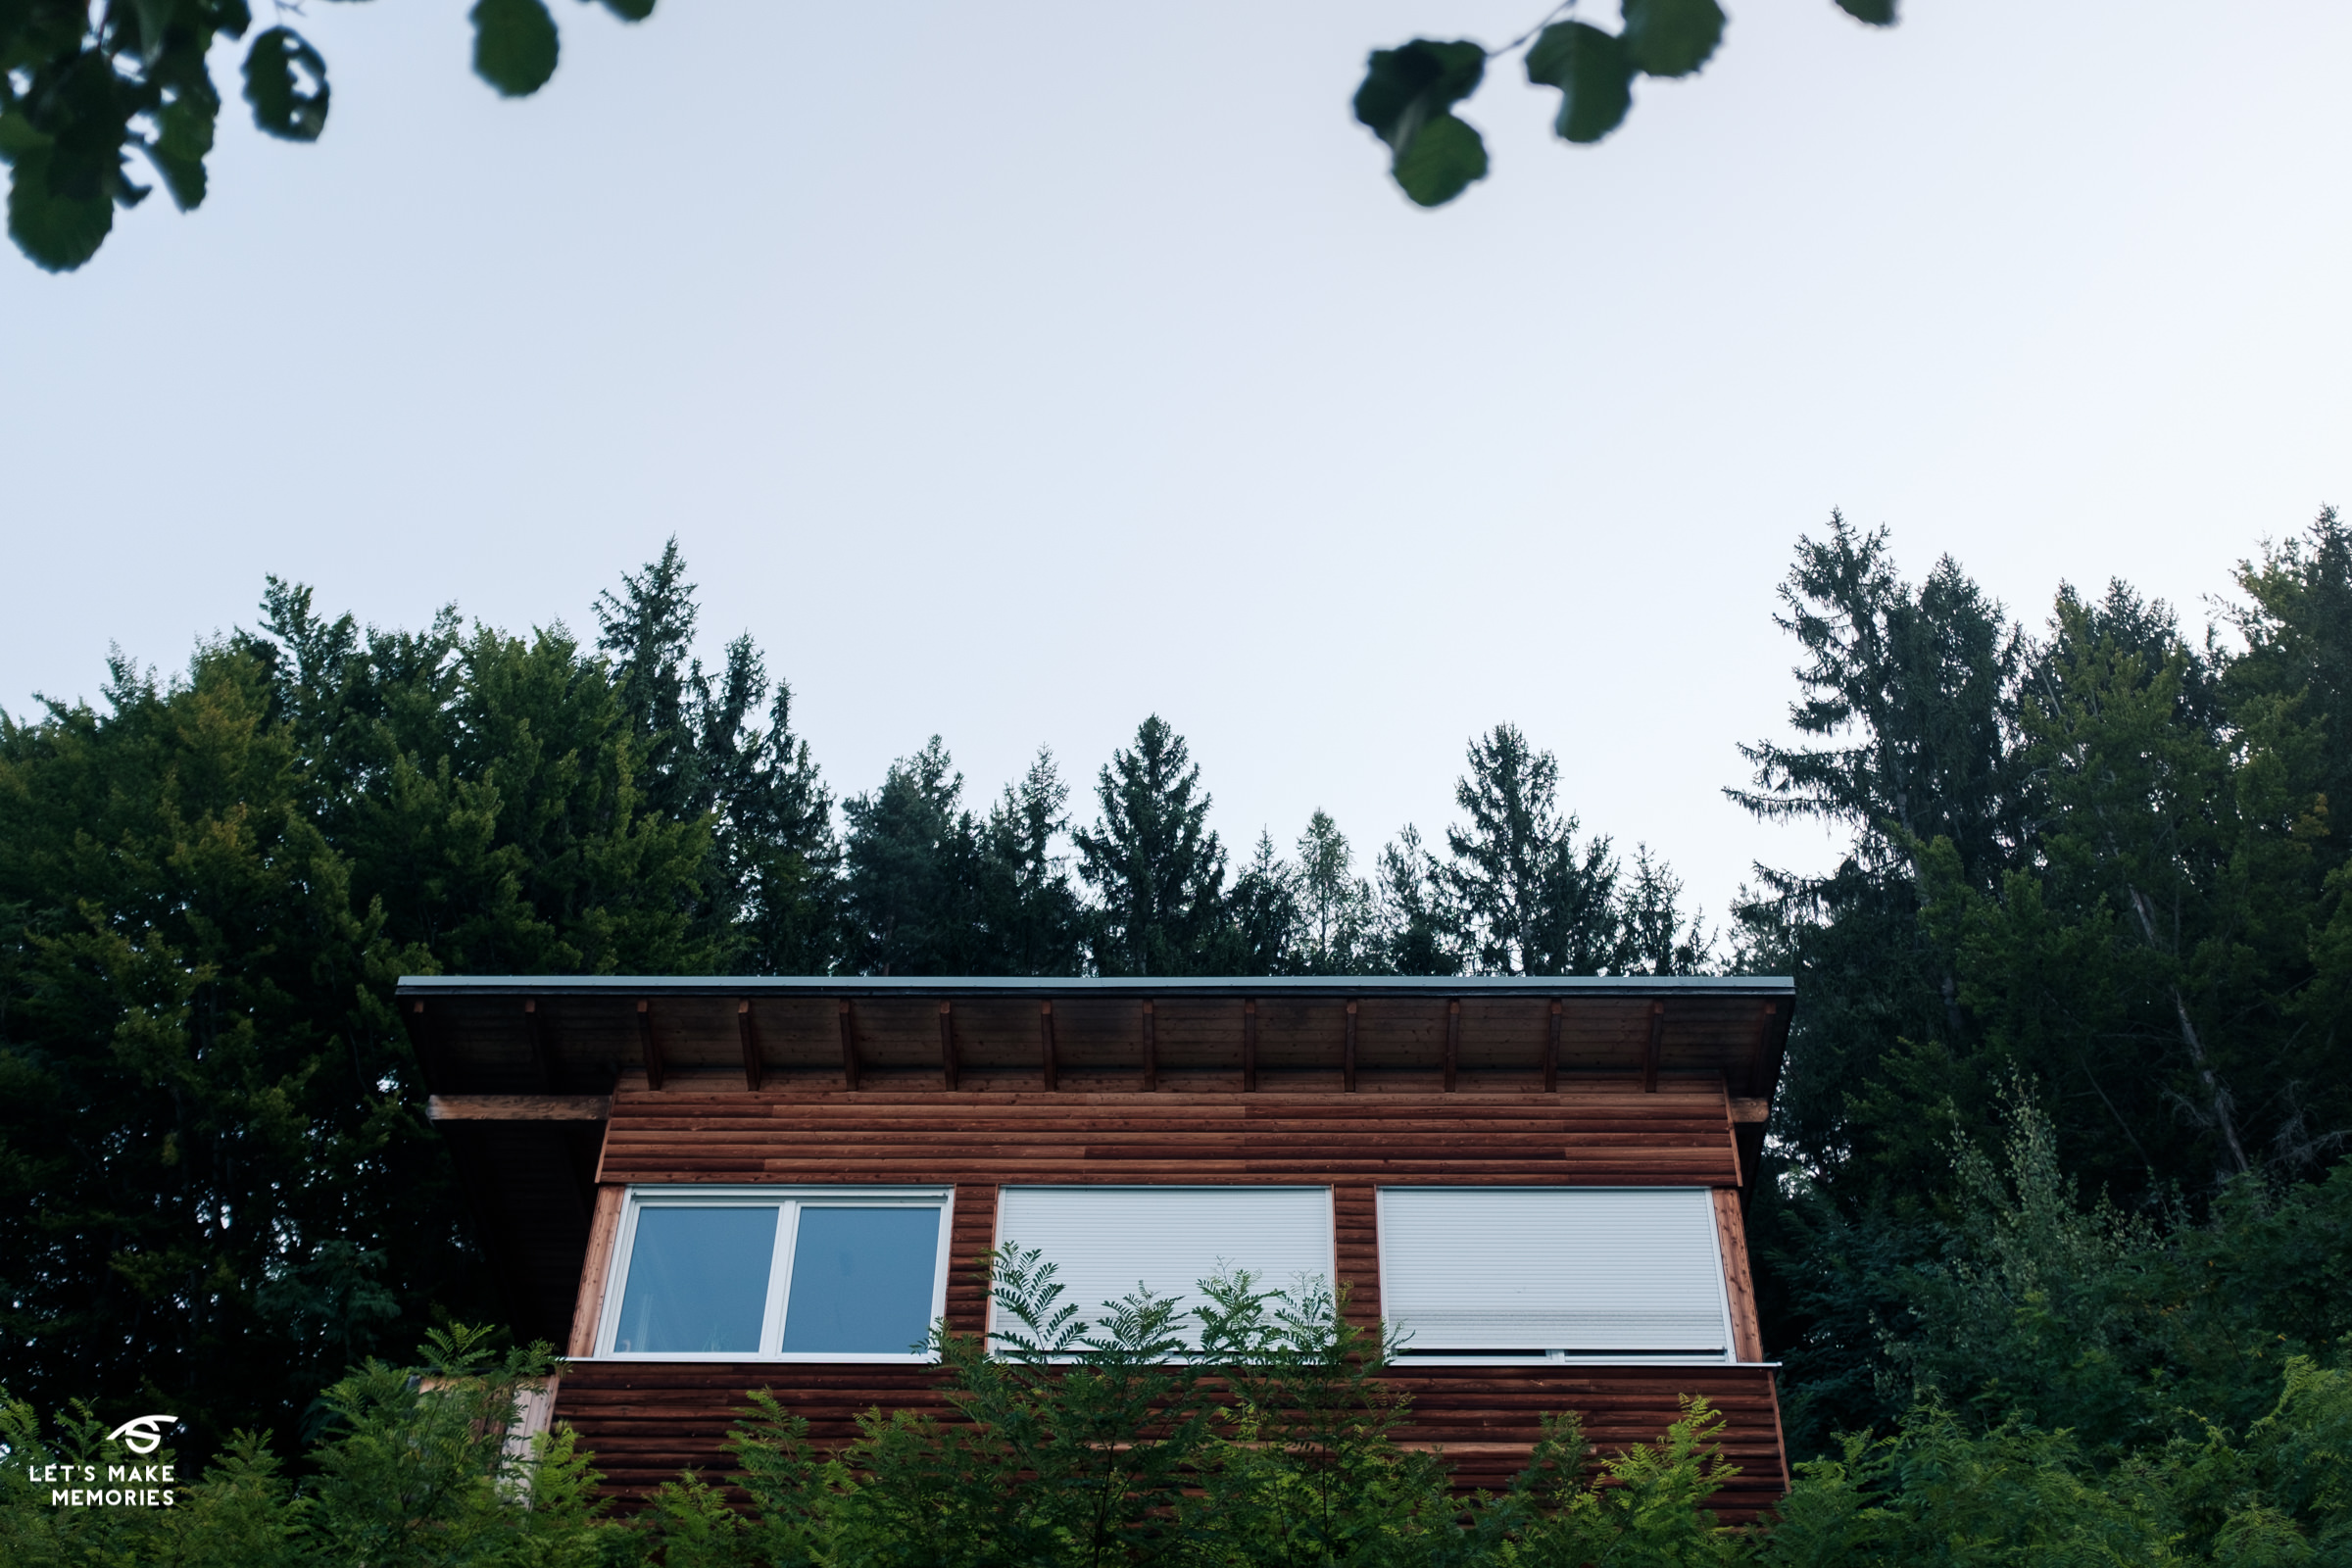 wood weekend getaway house on FaakerSee lake in Villach